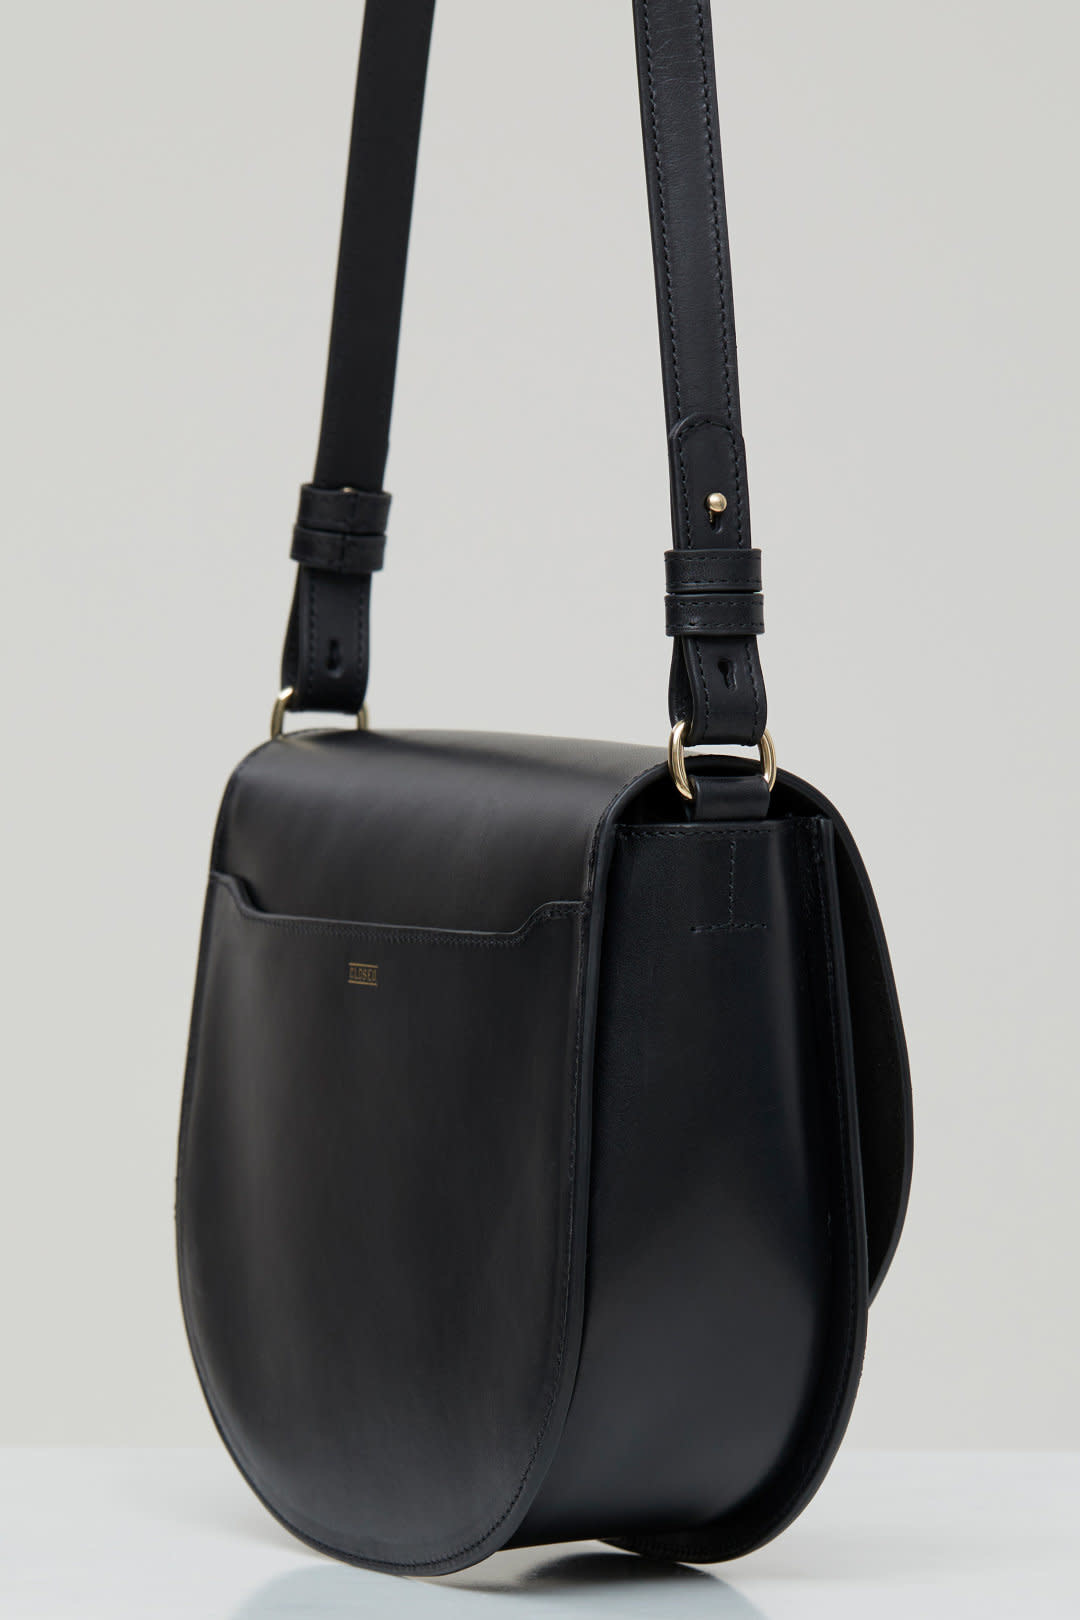 Ally M bag Black leather incl strap-7